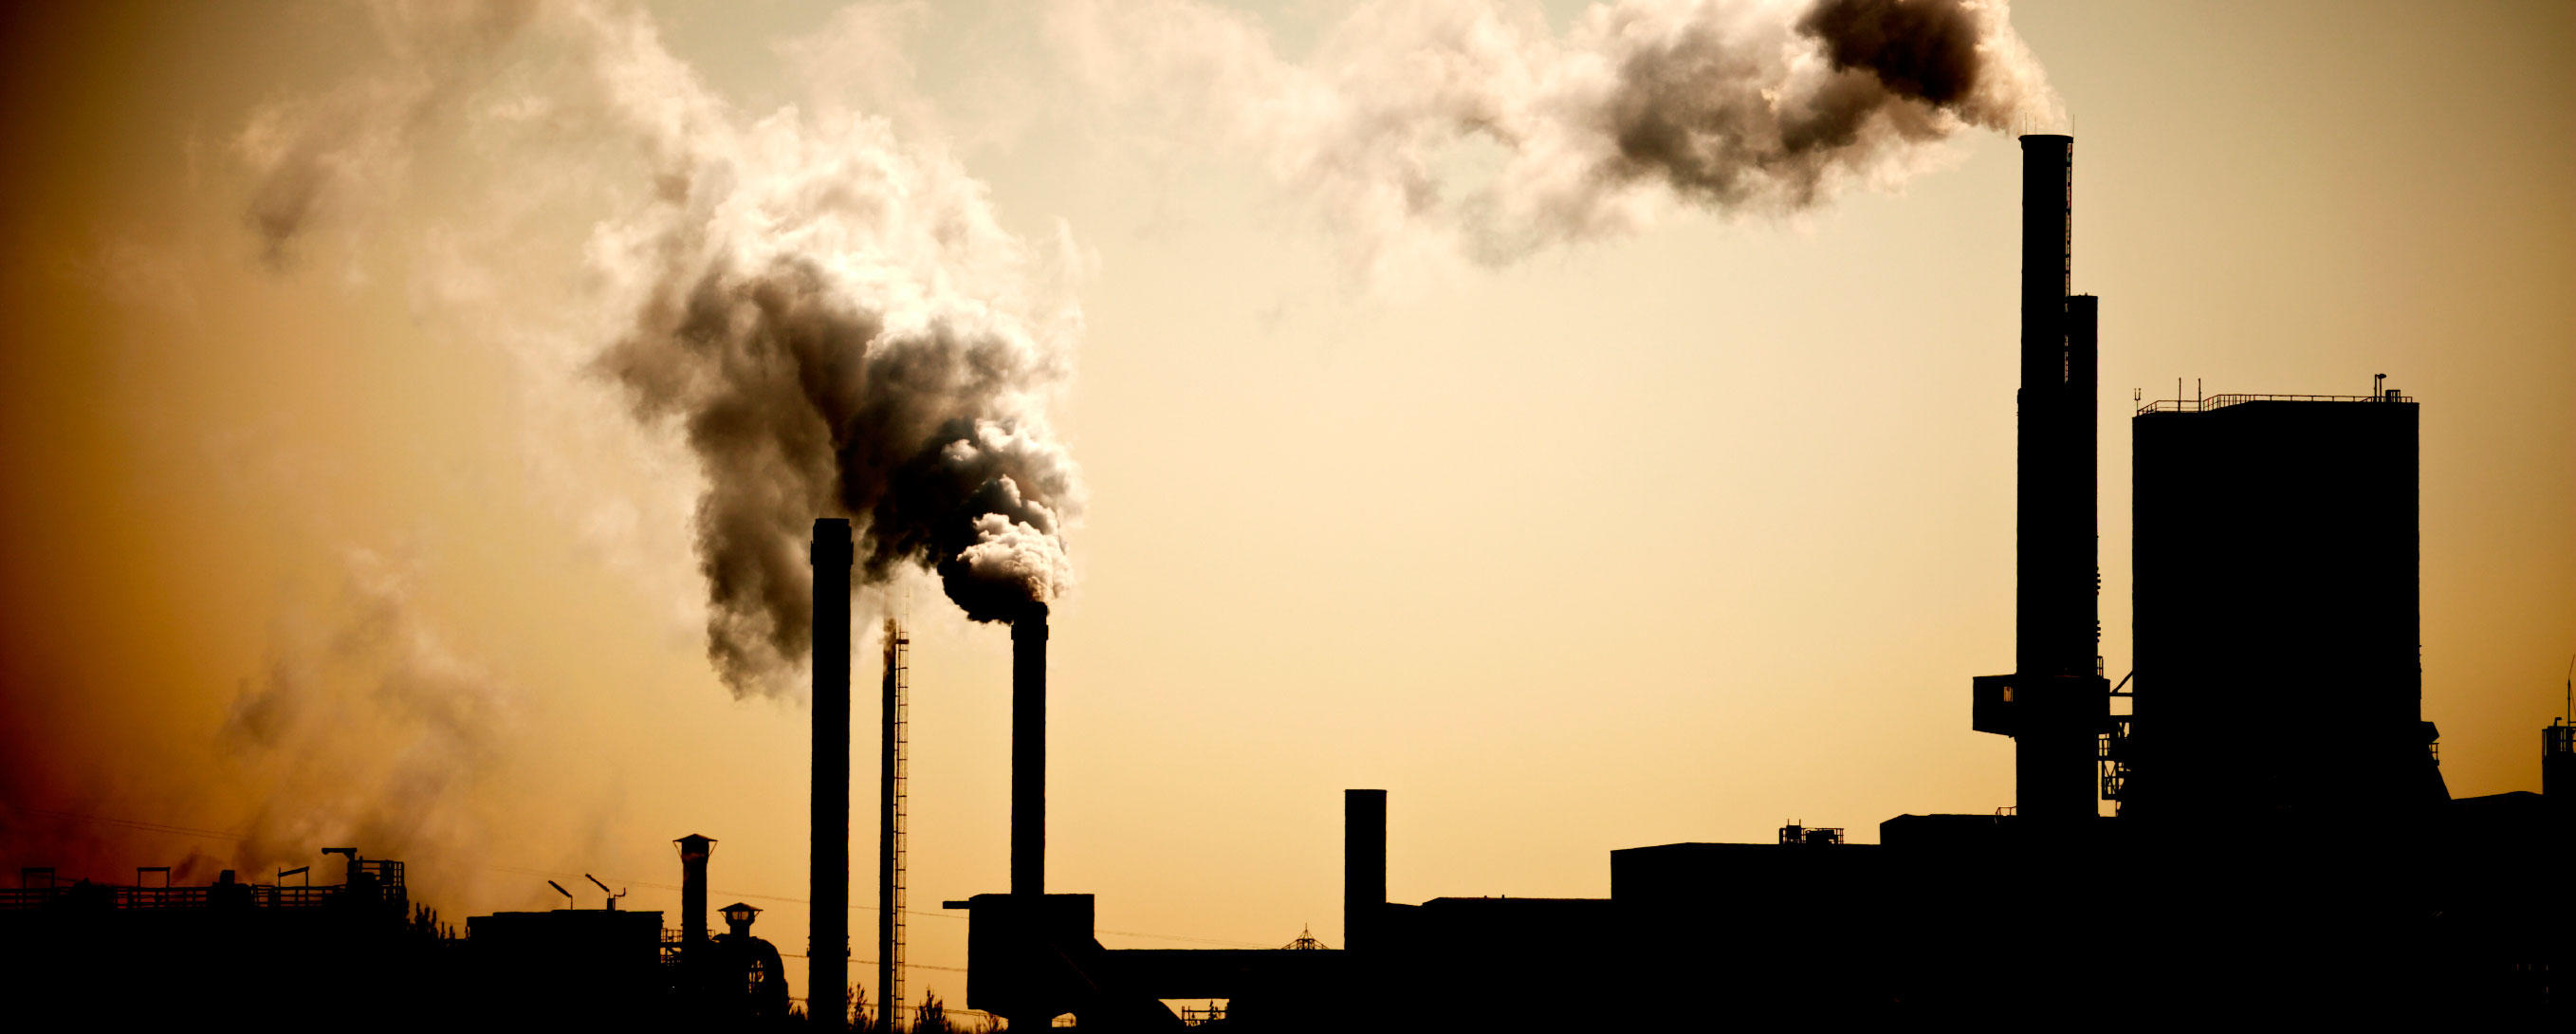 Industry chimney and exhaust fumes